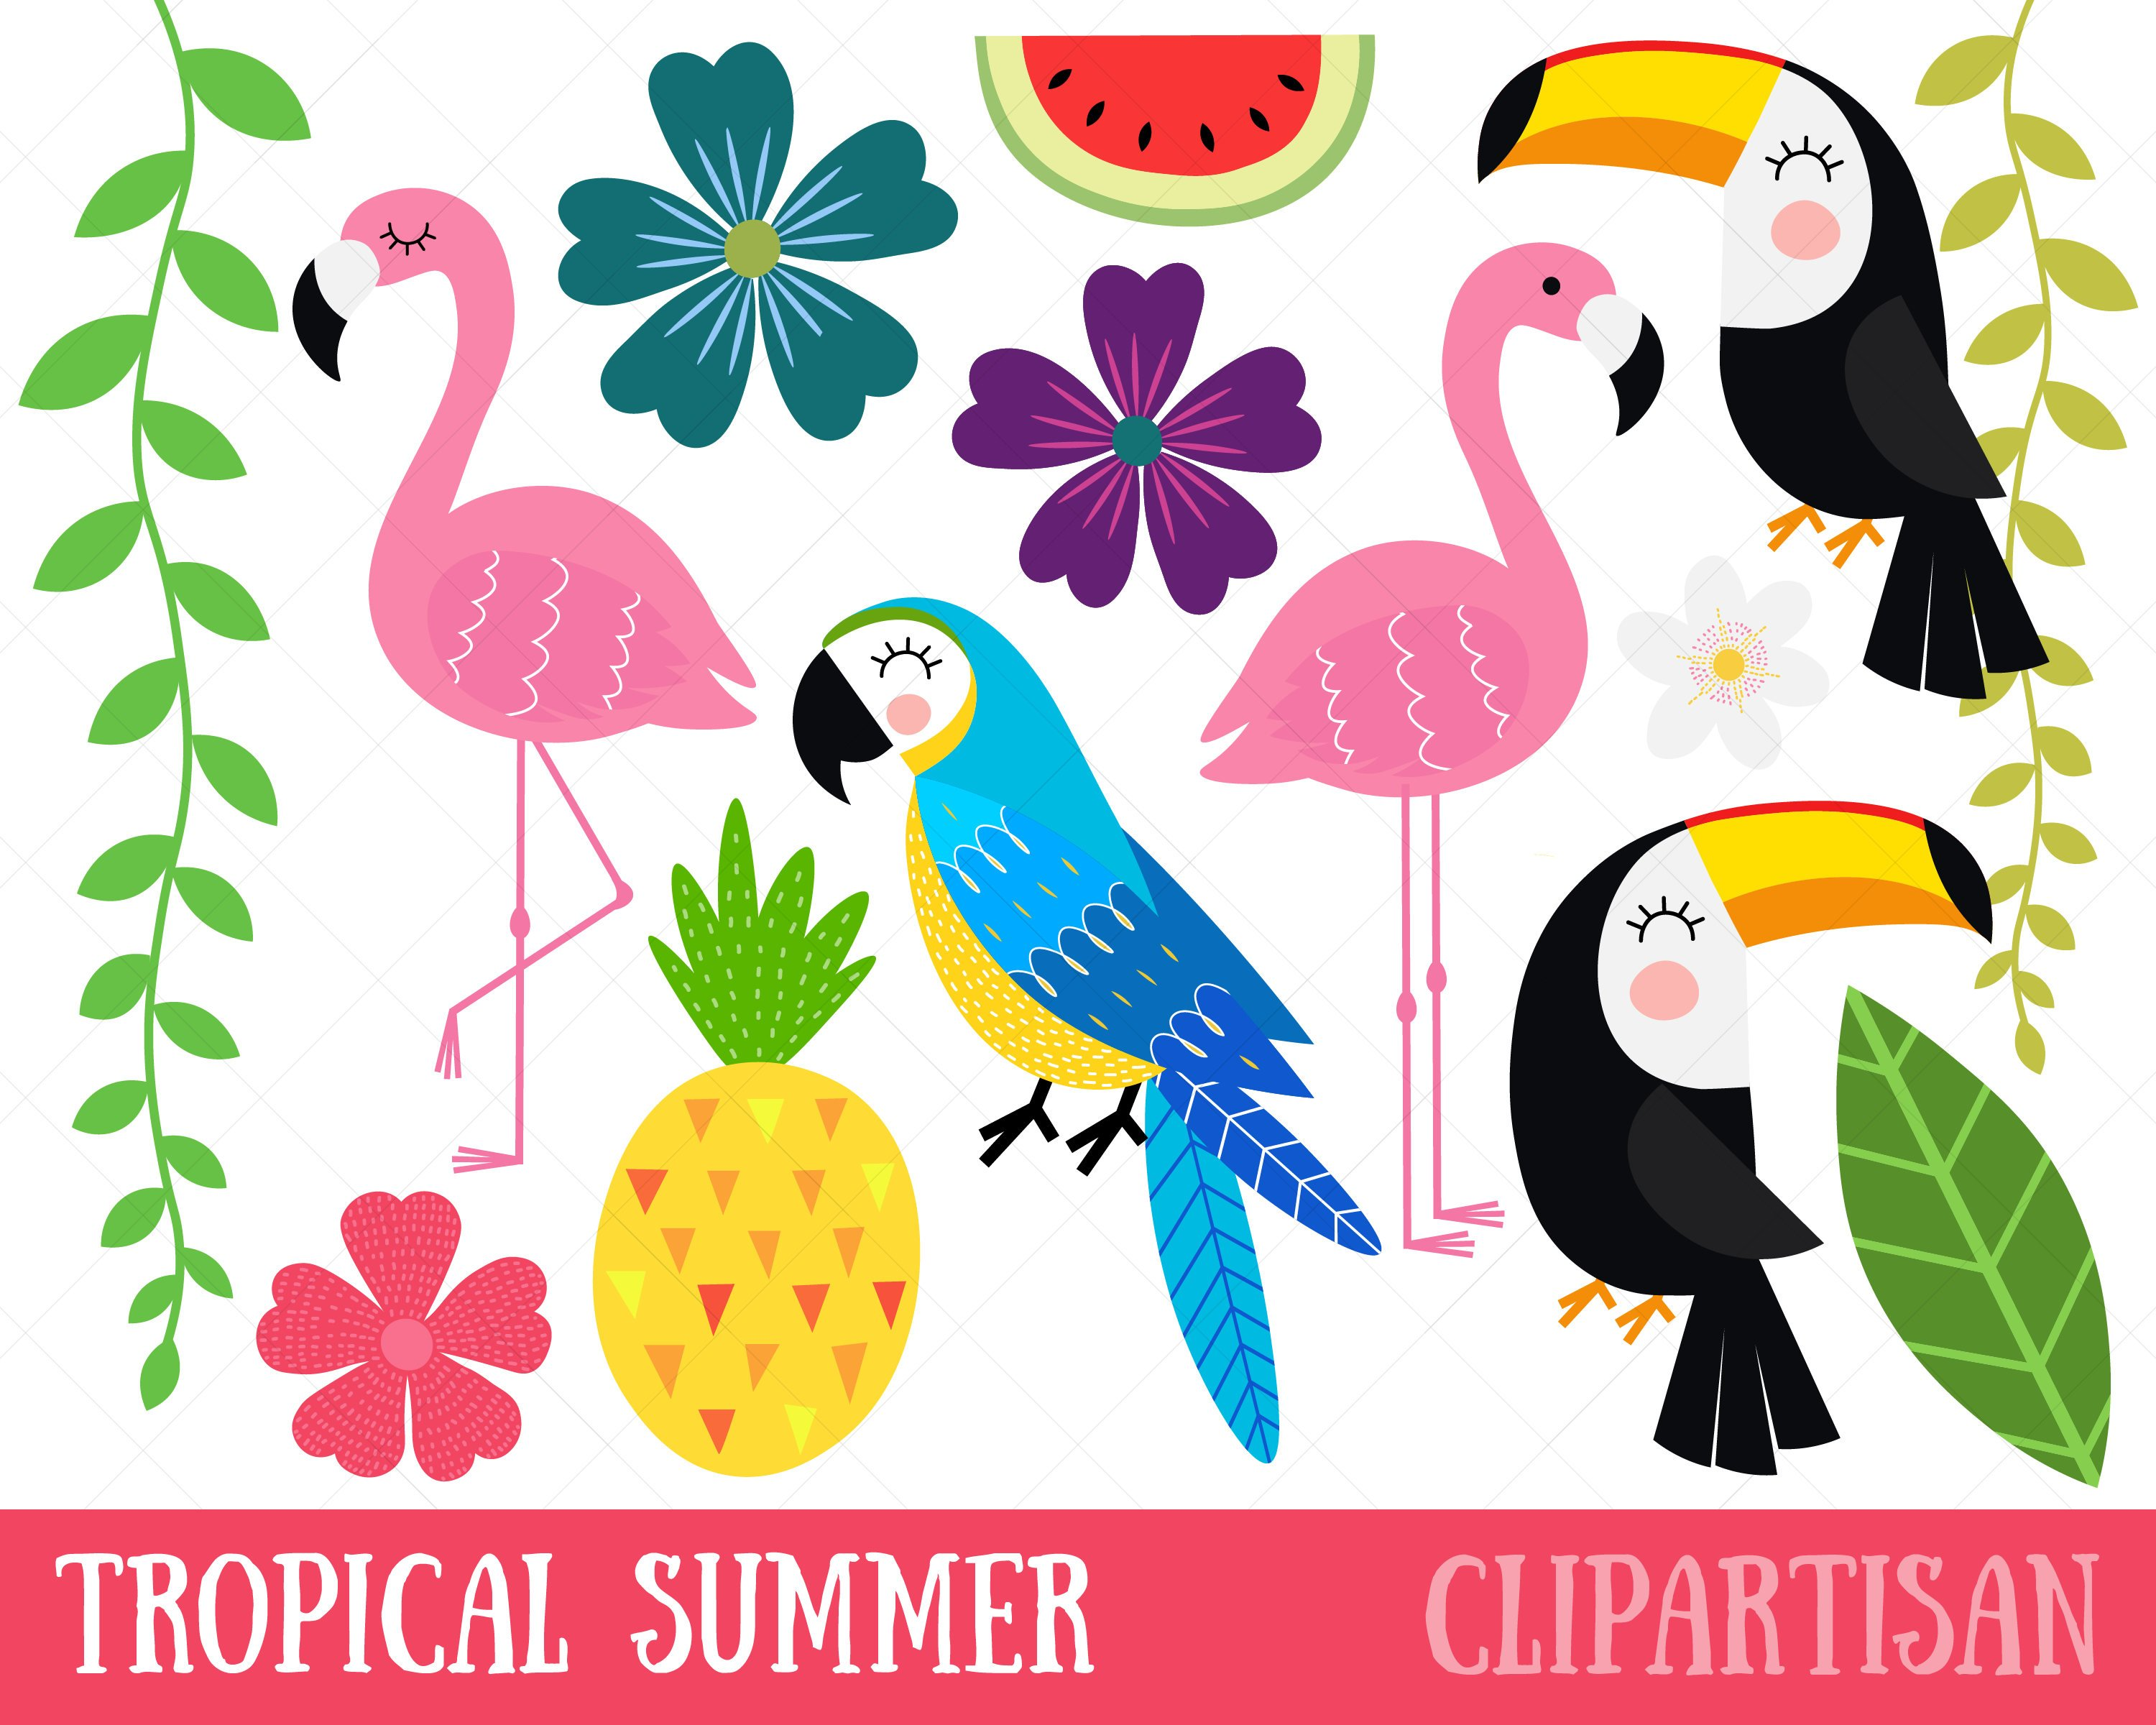 Tropical bird clipart 4 » Clipart Station.